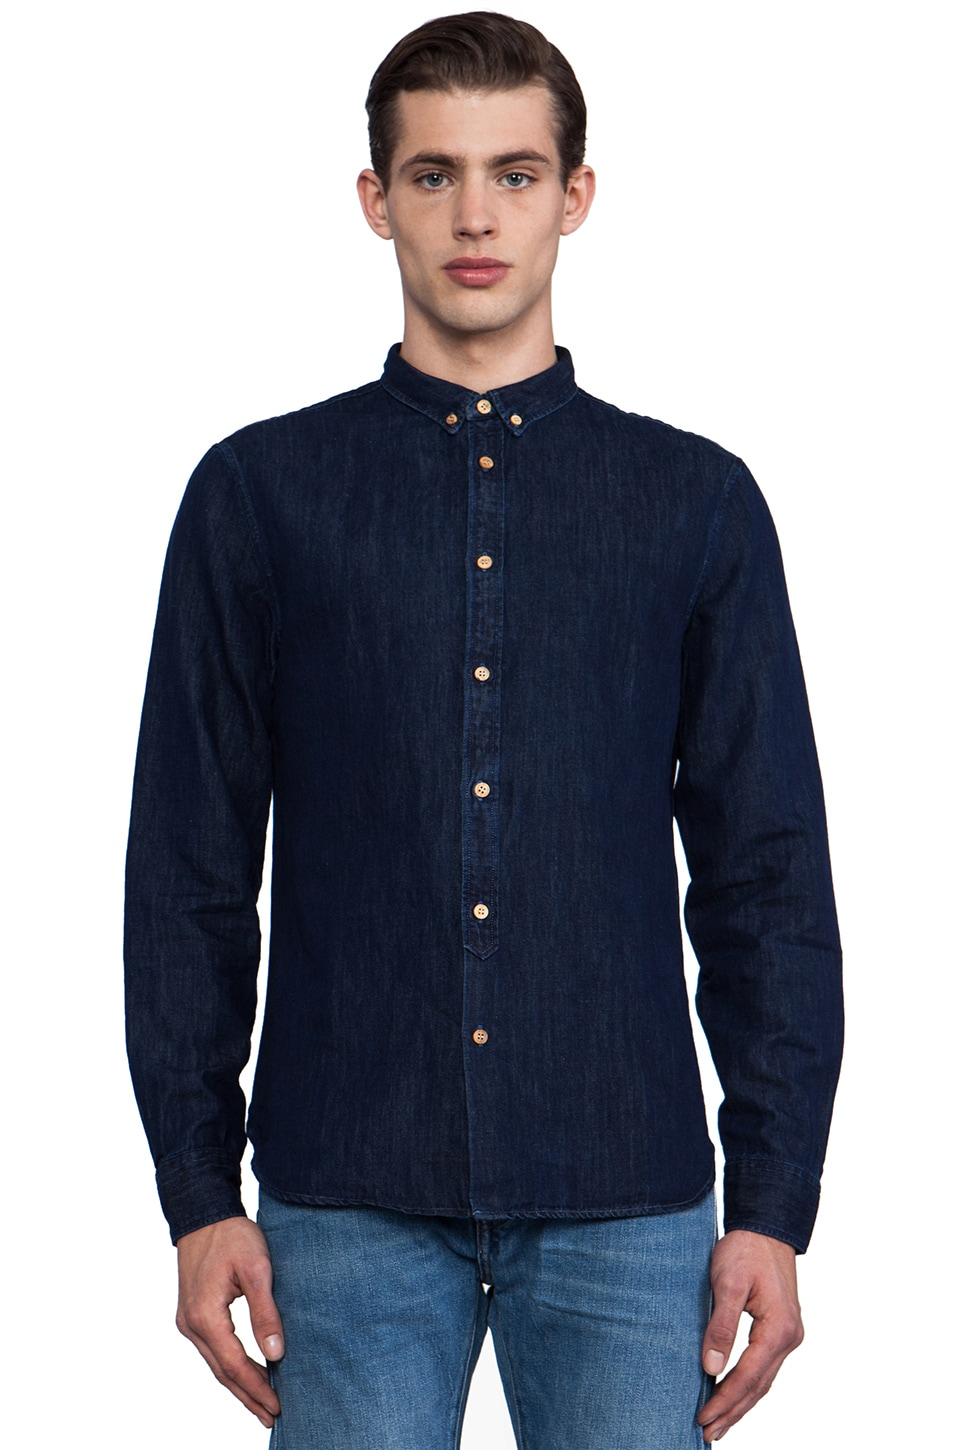 LEVI'S: Made & Crafted Shirt in Denim